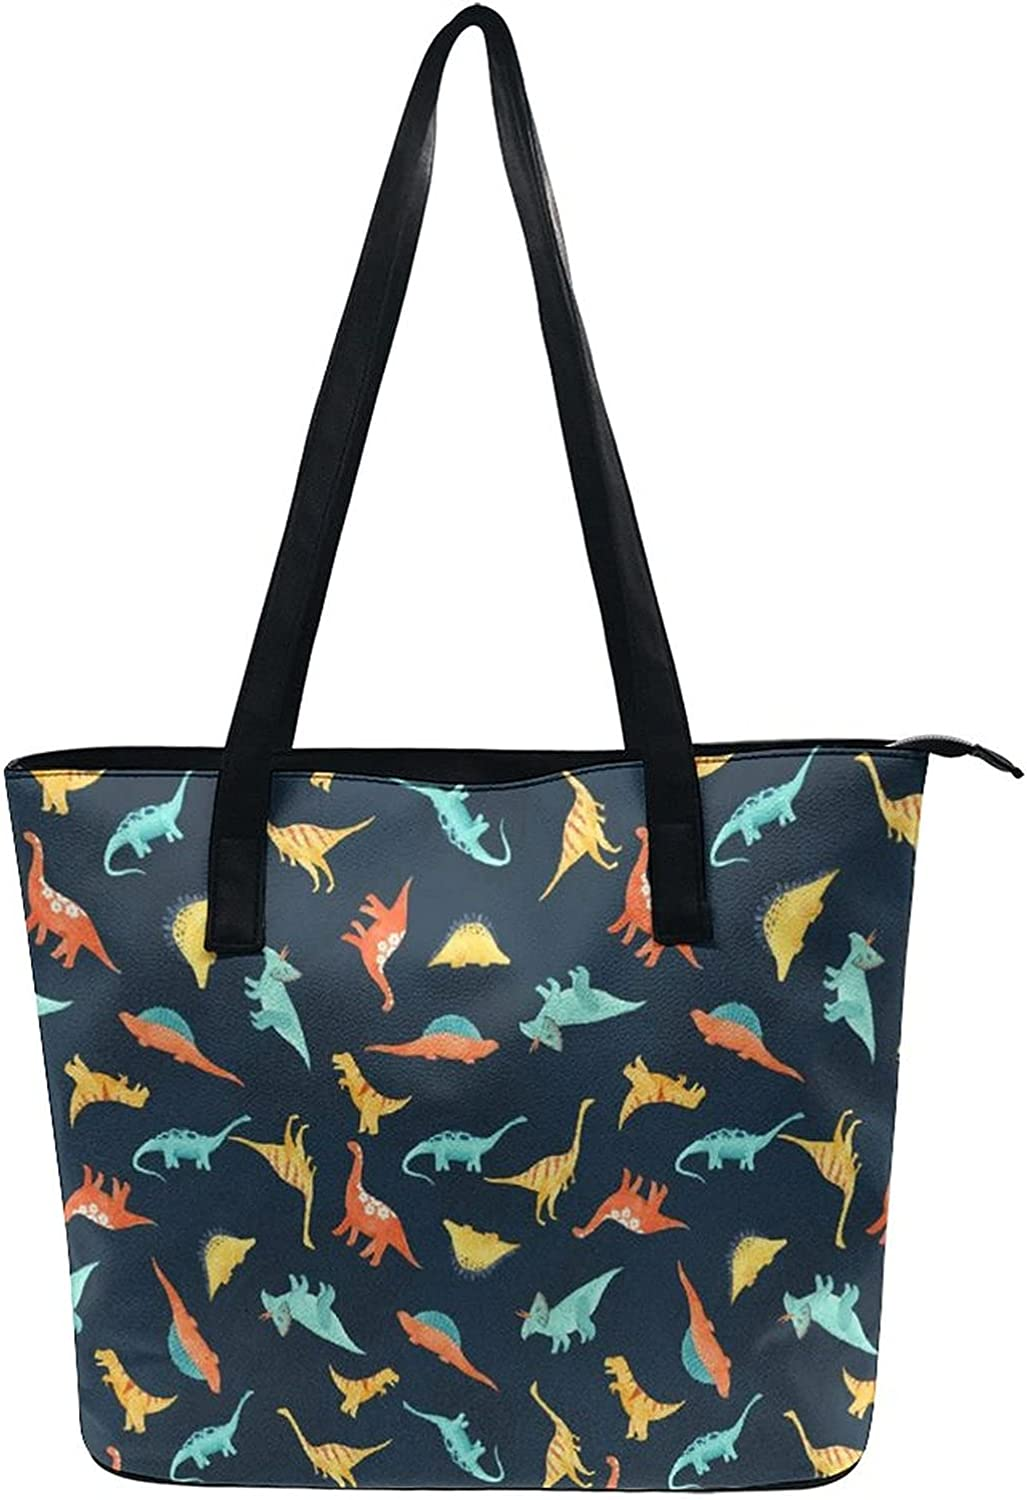 Shoulder Tote Bag Beach Satchel Bags For Women Lady Casual Shopping Bags